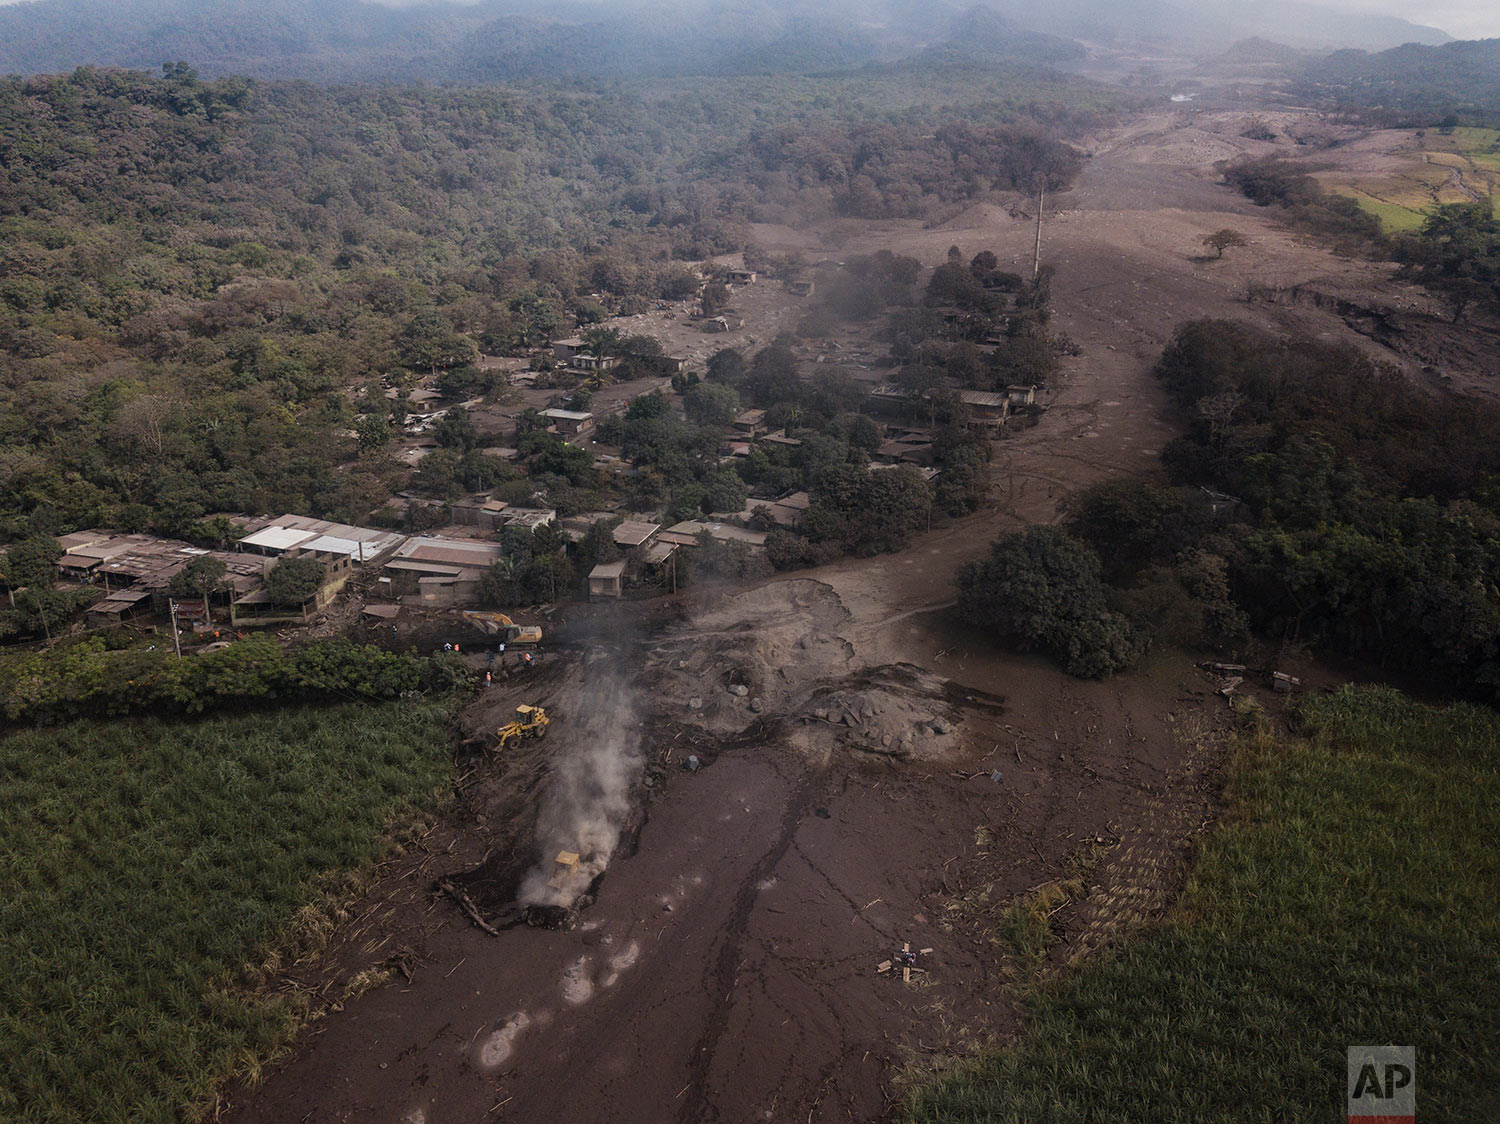 "Bulldozers work to remove volcanic ash near the Volcan de Fuego, or ""Volcano of Fire,"" in El Rodeo, Guatemala, Wednesday, June 6, 2018. Rescuers were concerned about possible dangers posed not only by more volcanic flows but also rain. Authorities have said the window is closing on the chances of finding anyone else alive in the devastation. (AP Photo/Rodrigo Abd)"